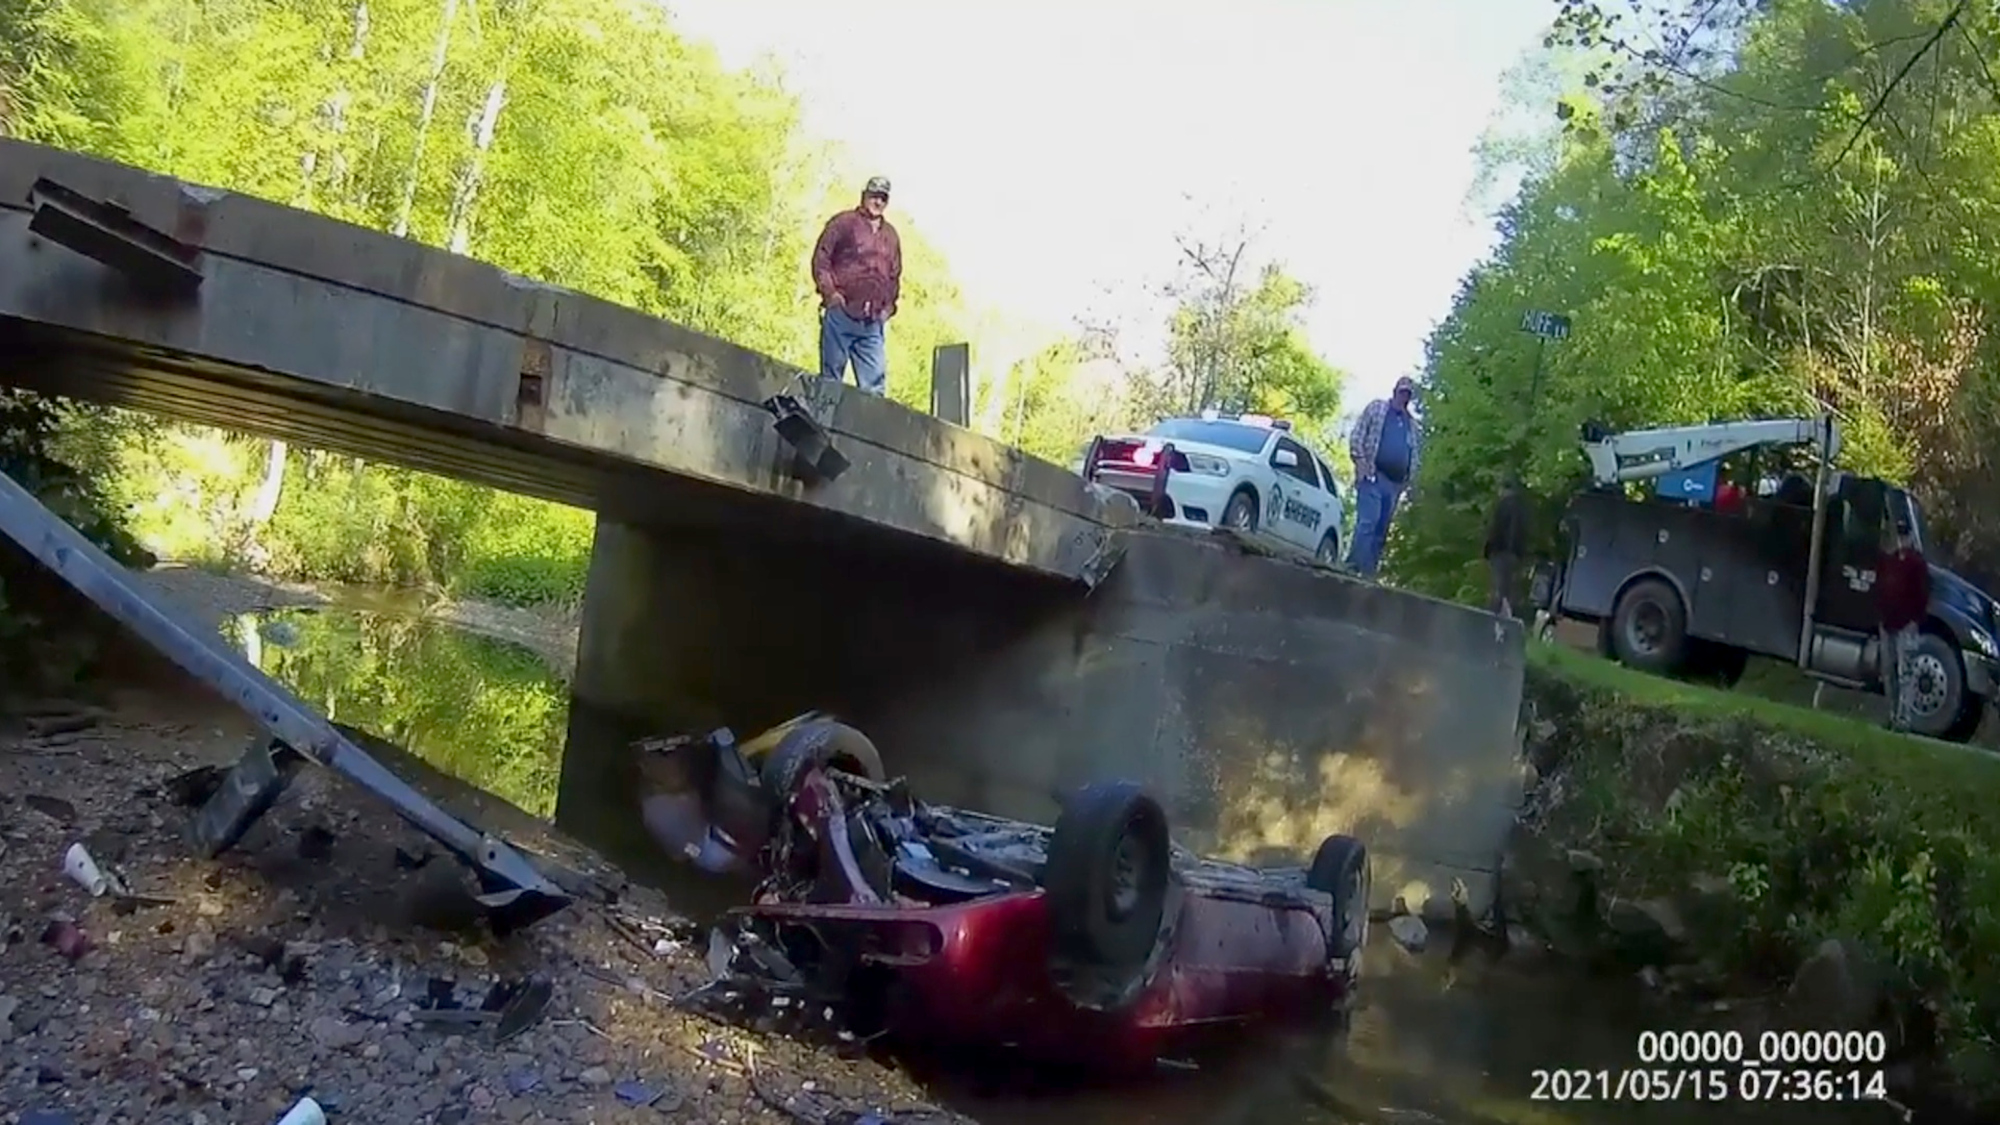 VIDEO: Up Flipped Creek: Rescuers Pull Man From Overturned Car